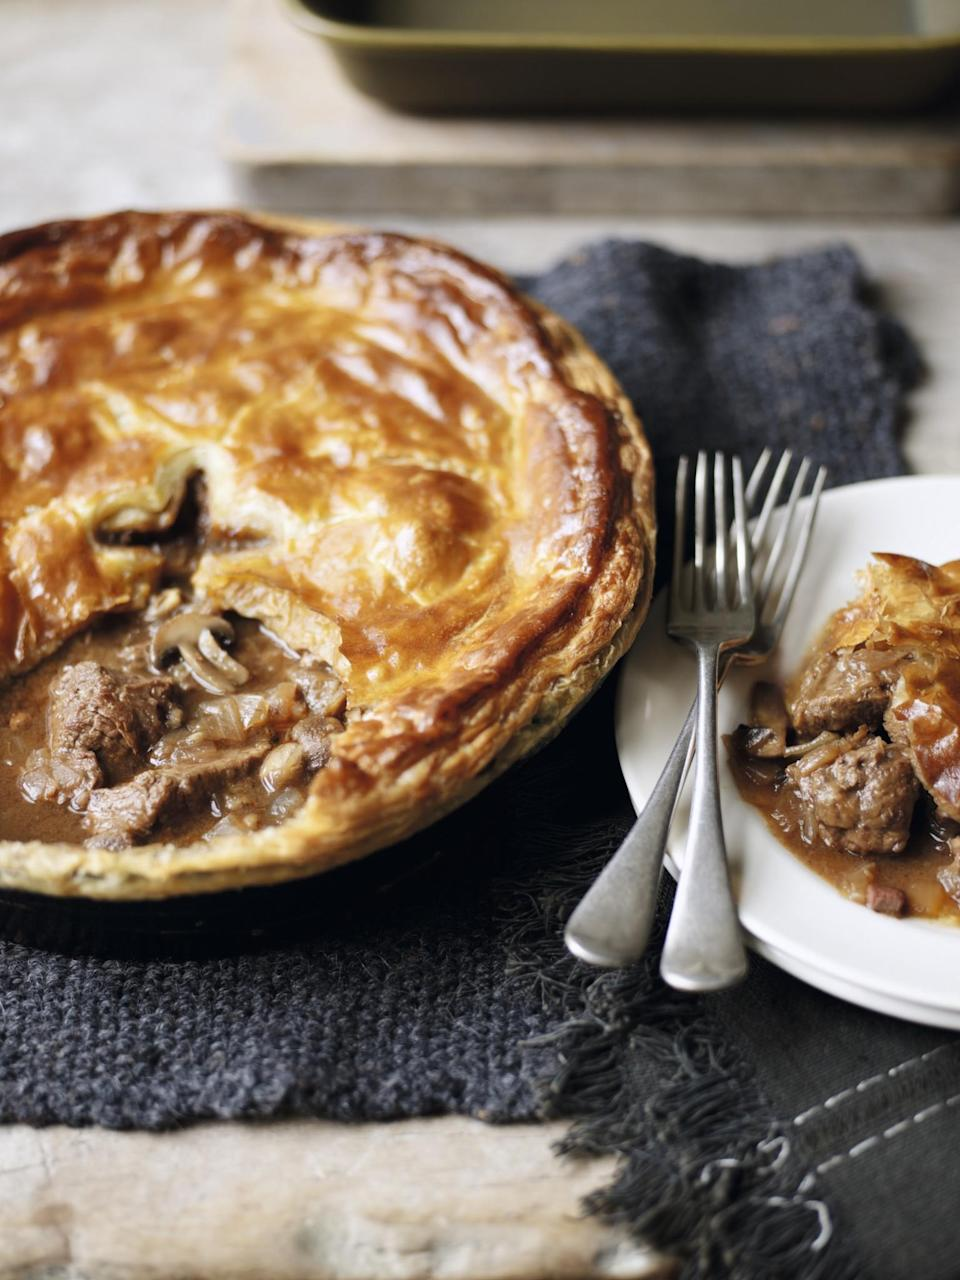 "<p>There isn't just Guinness in <a href=""http://www.waitrose.com/content/waitrose/en/home/recipes/recipe_directory/s/steak_and_guinness_pie.html"" rel=""nofollow noopener"" target=""_blank"" data-ylk=""slk:this version"" class=""link rapid-noclick-resp"">this version</a> of a classic pie, but a whole glass of red wine too. Cheers! [Photo: <a href=""http://www.waitrose.com/recipes"" rel=""nofollow noopener"" target=""_blank"" data-ylk=""slk:www.waitrose.com/recipes"" class=""link rapid-noclick-resp"">www.waitrose.com/recipes</a>] </p>"